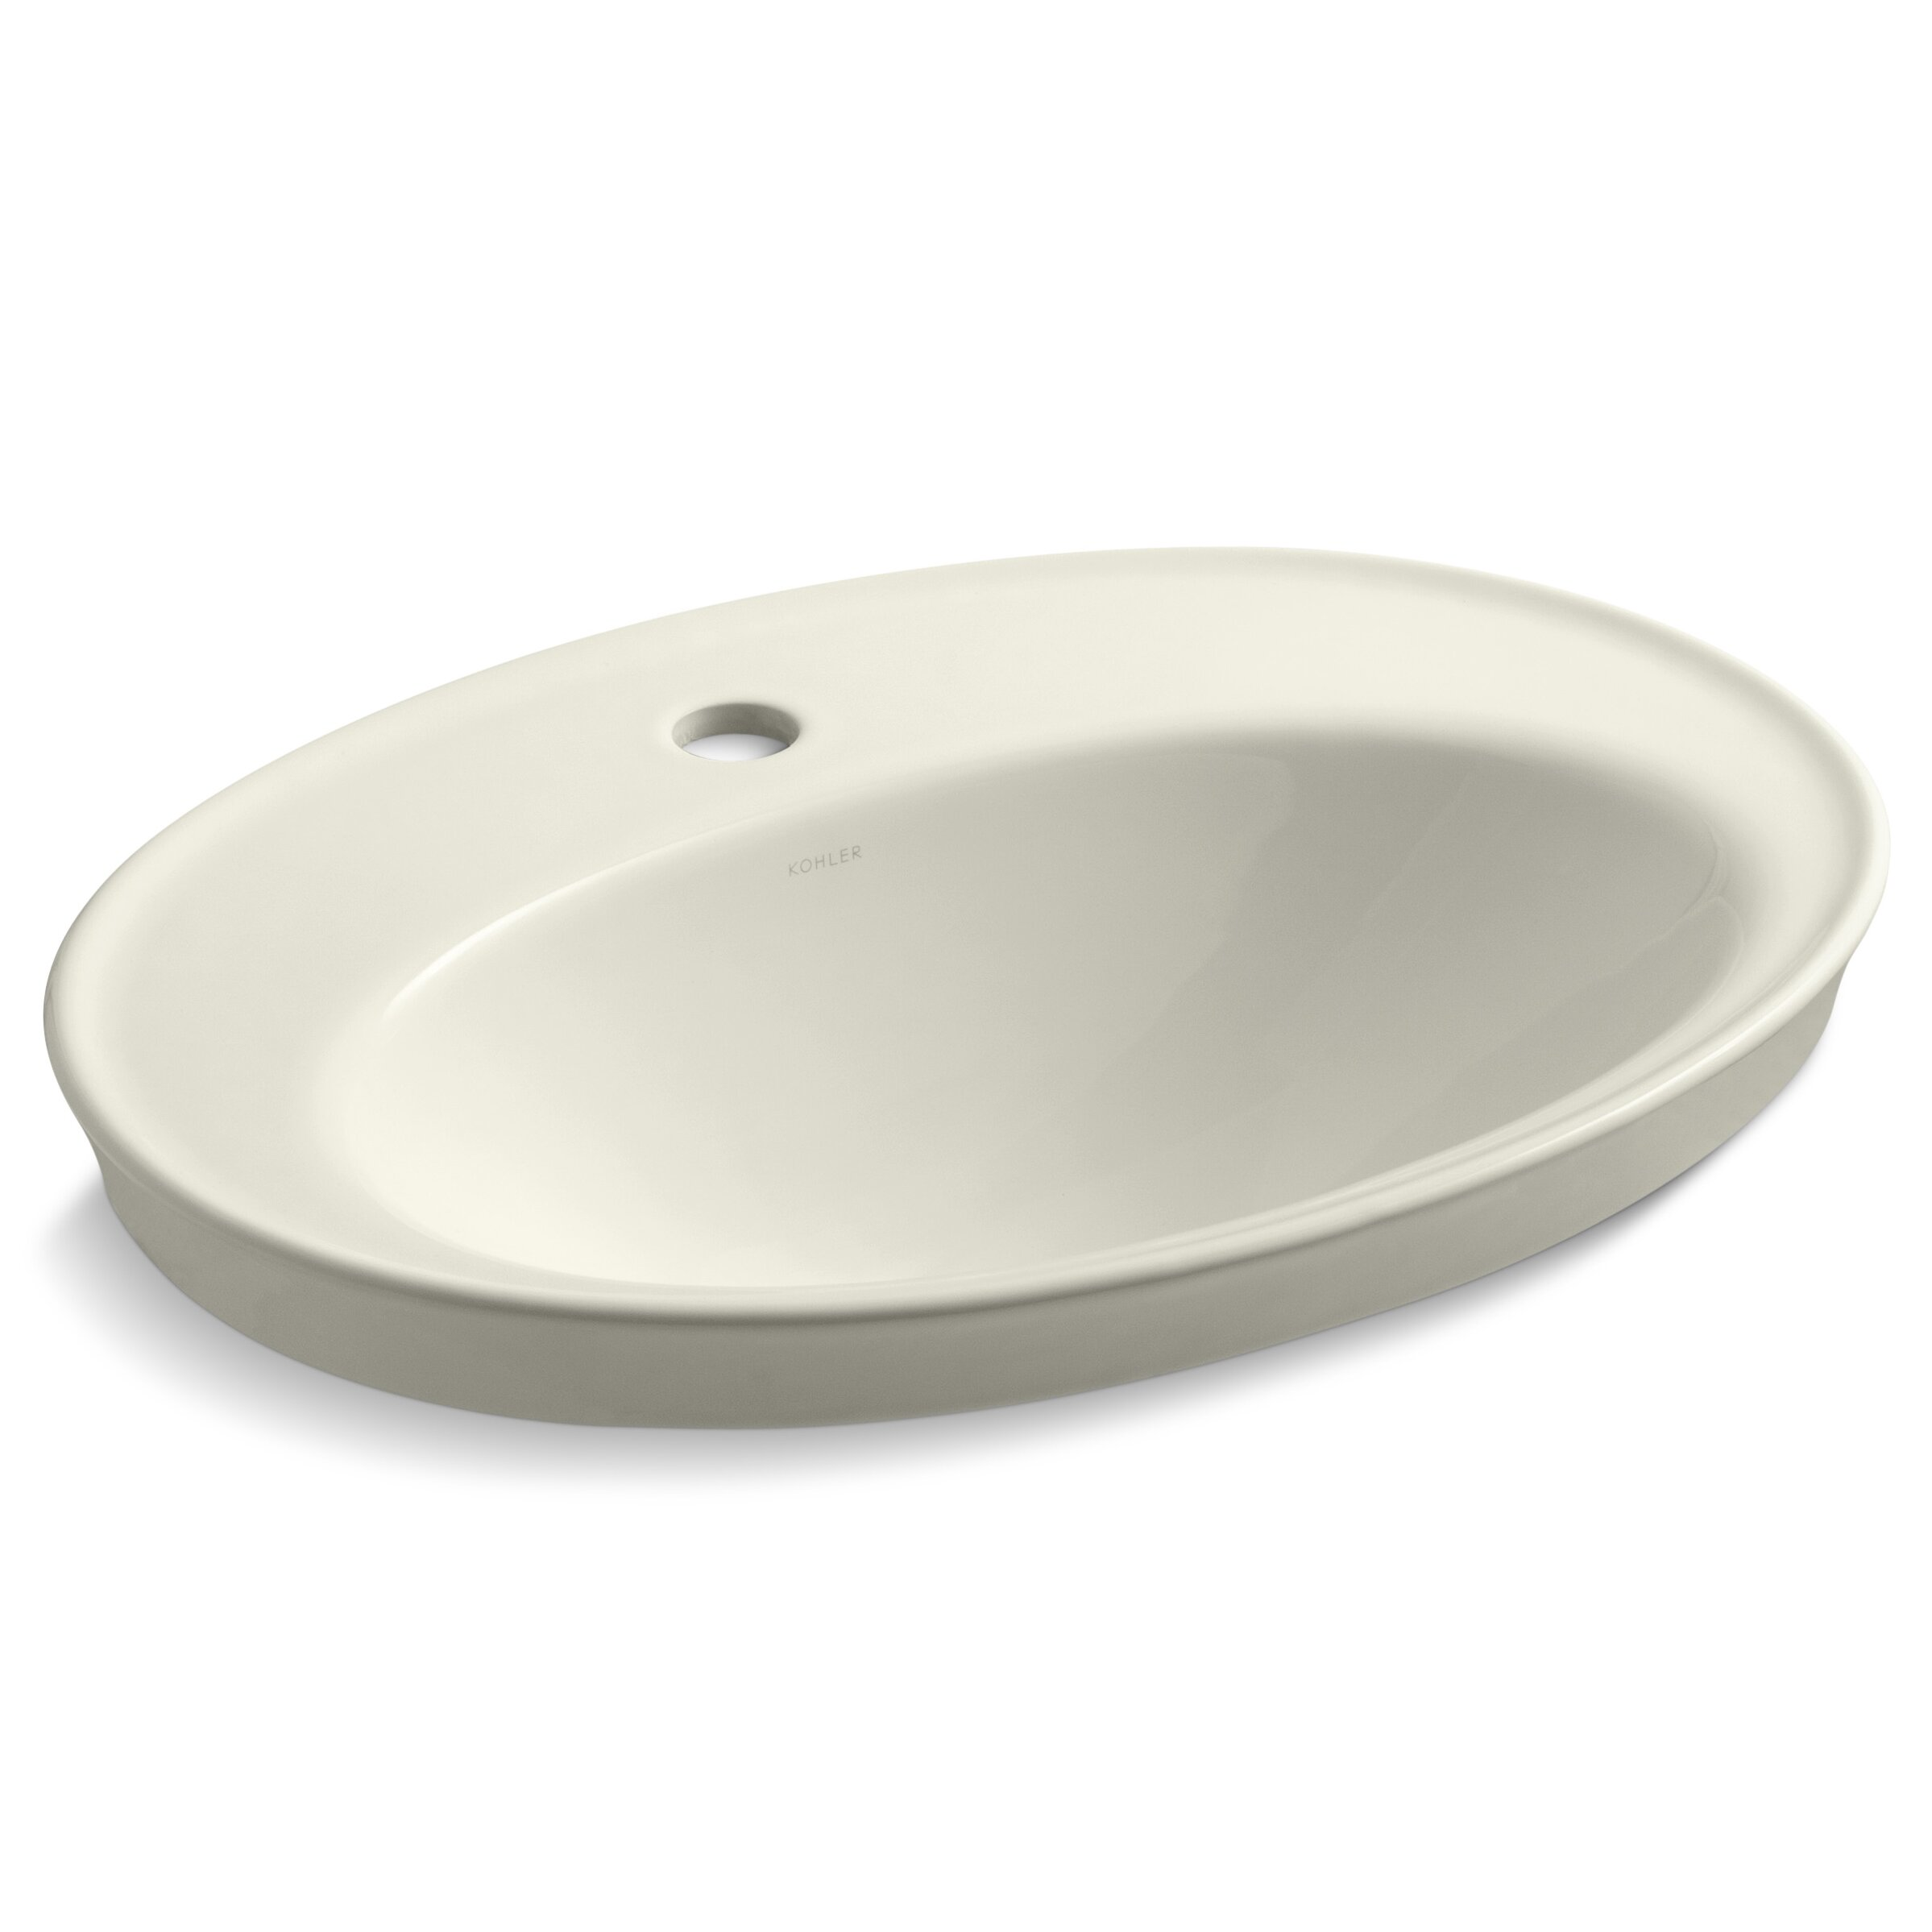 Www Kohler Toilets : Kohler Toilets Showers Sinks Faucets And More For Bathroom Ask Home ...